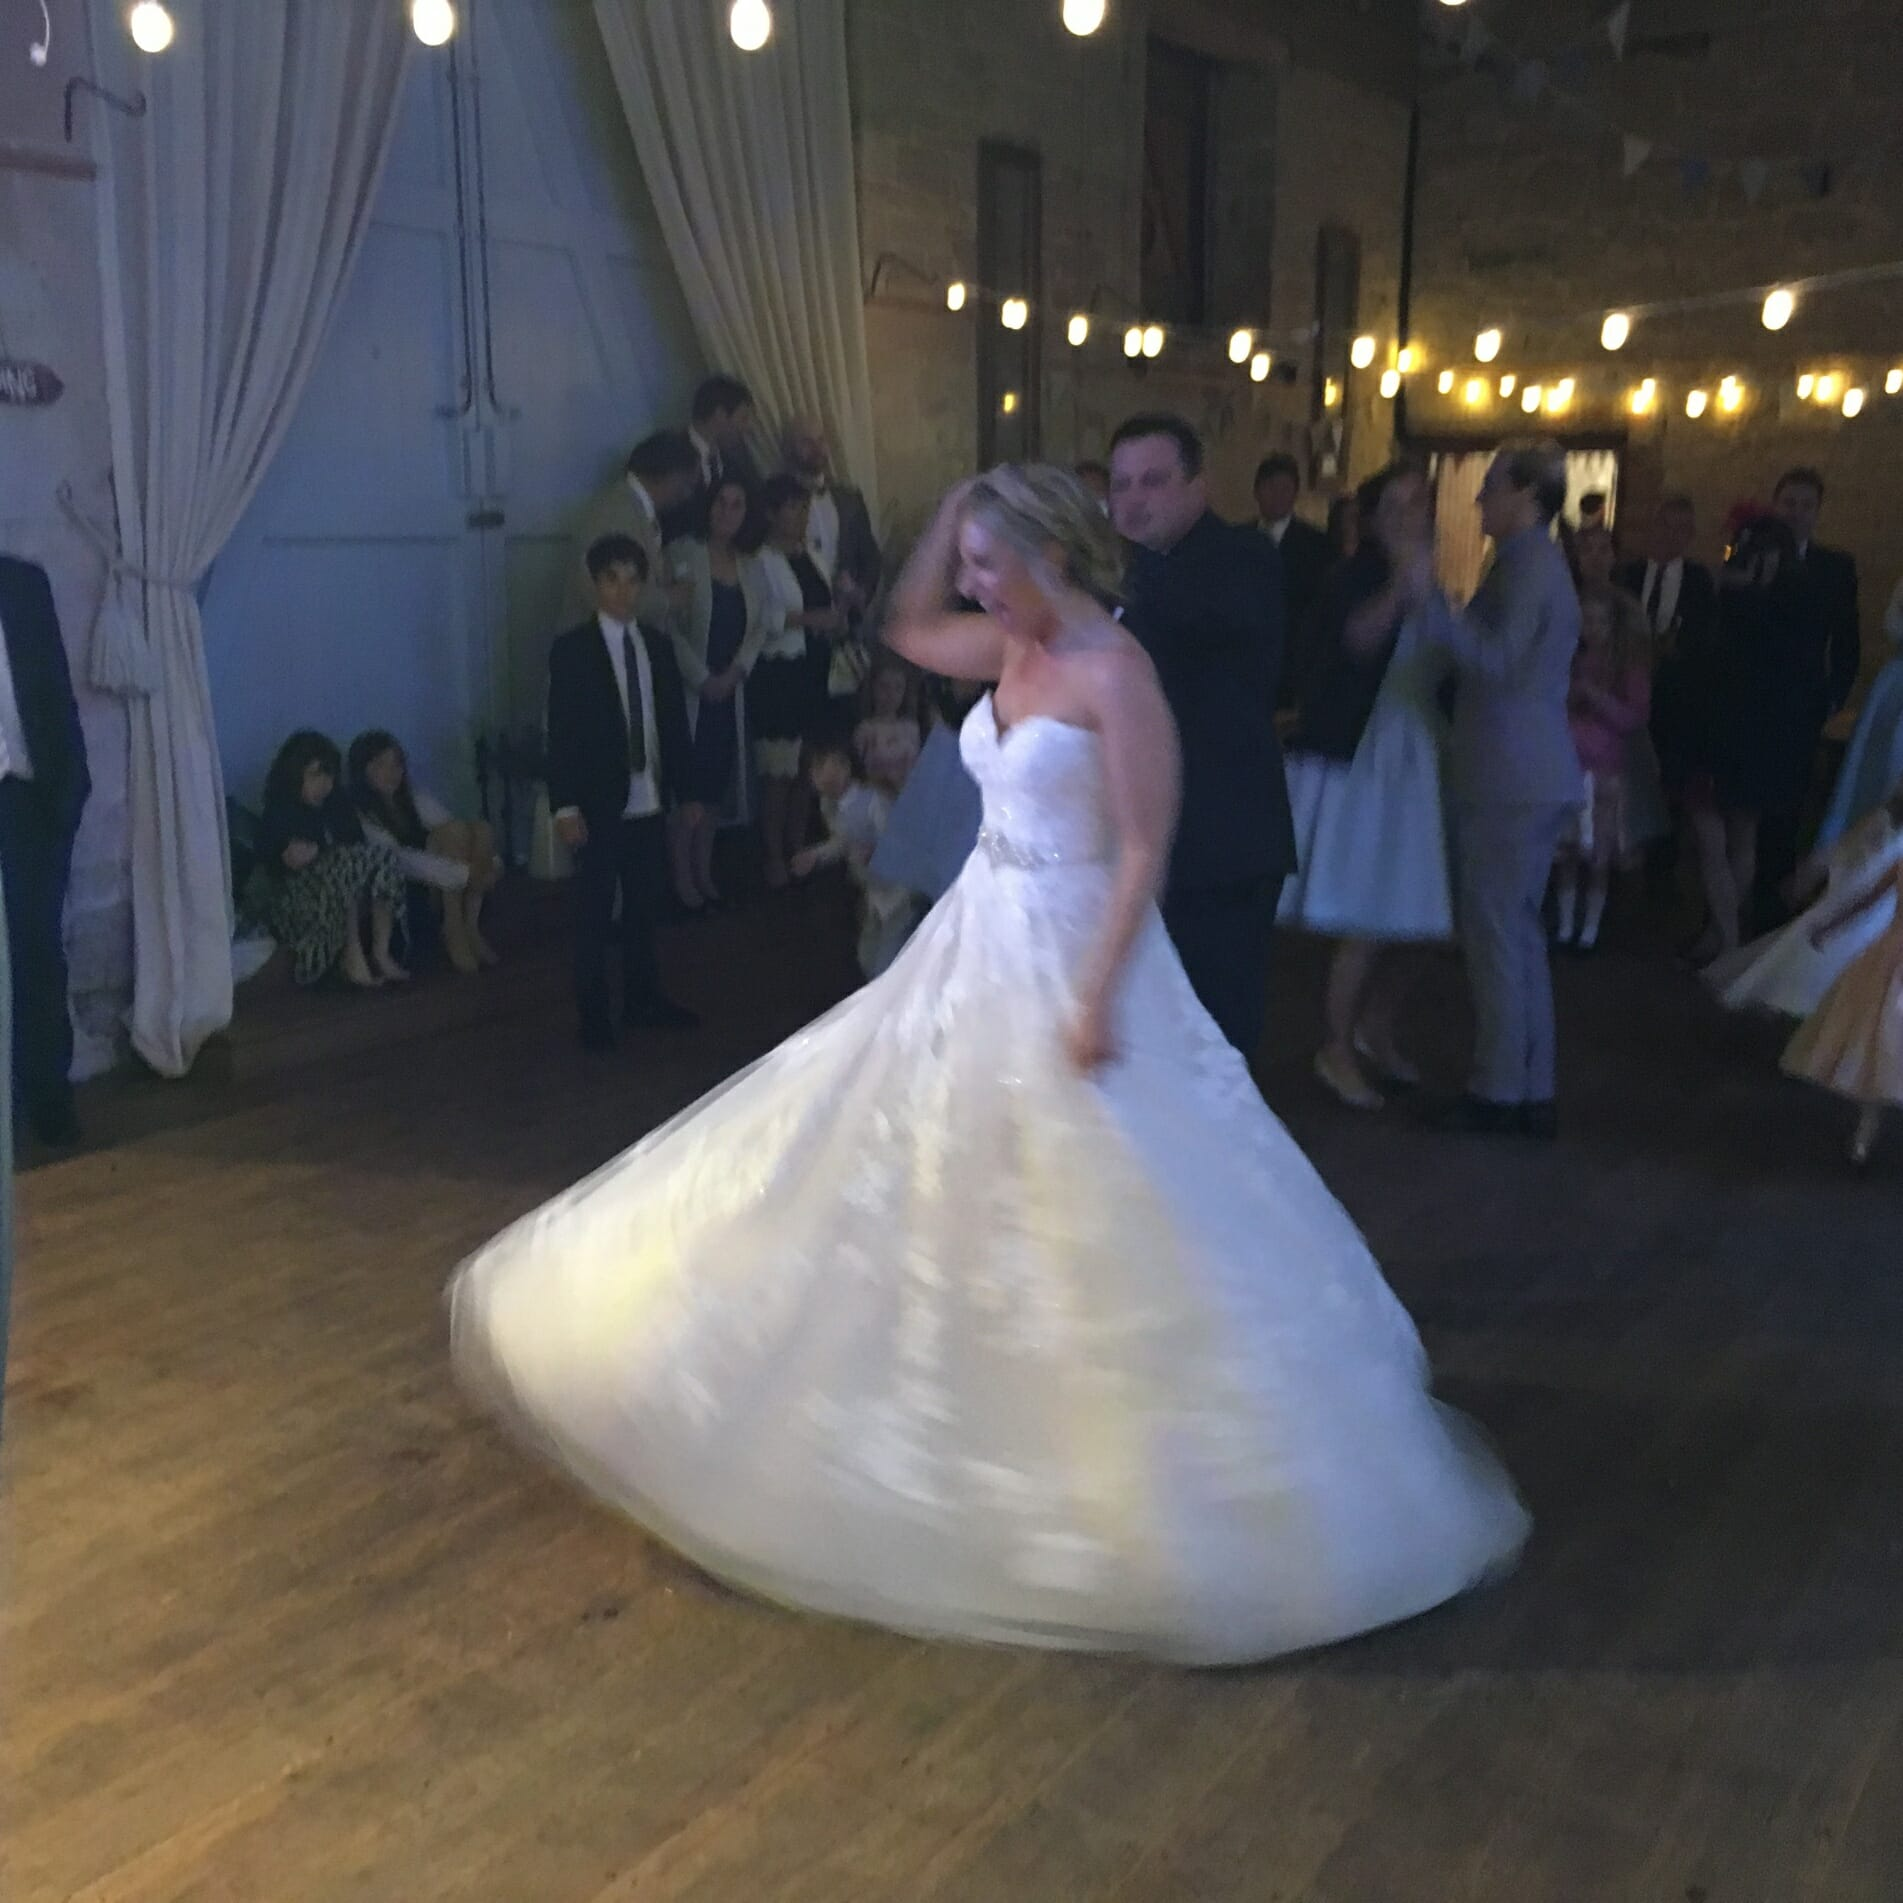 First Dance, Philippa & kevin, Ashleywood Farm, Bride and Groom, Dancing, The Zoots, wedding band,